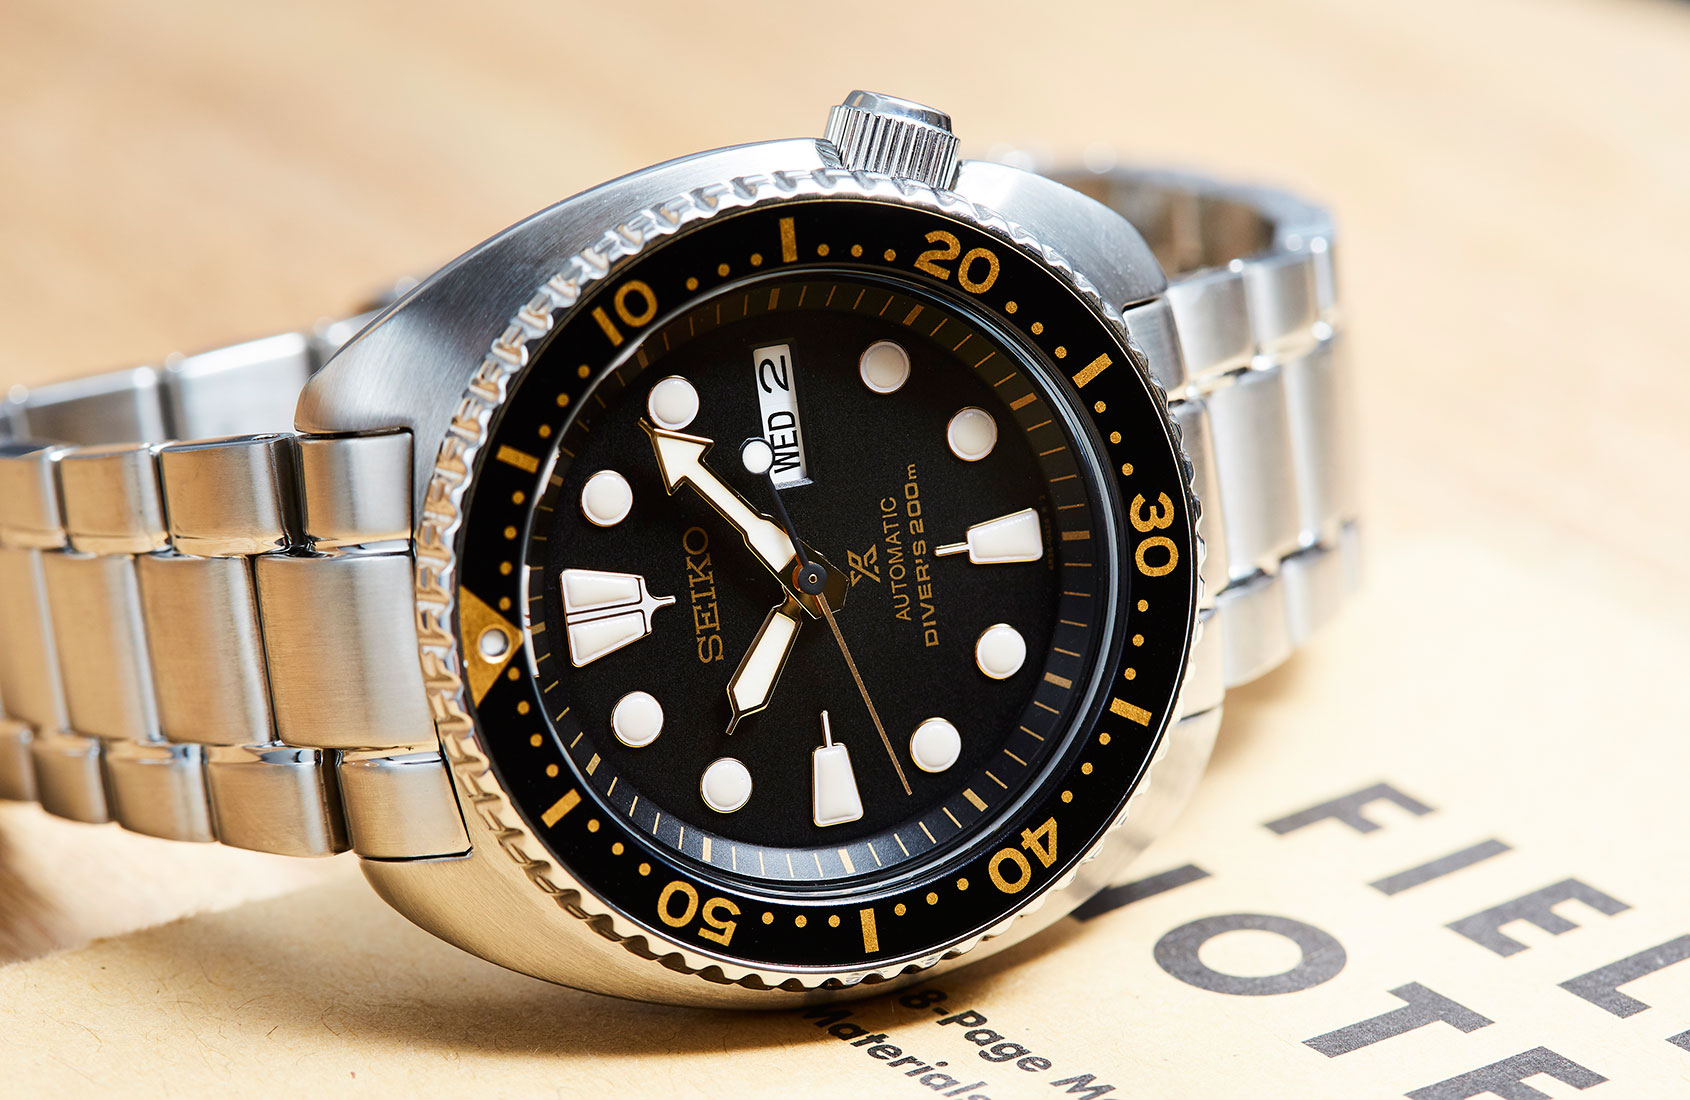 Why the Seiko Turtle could be your first good watch